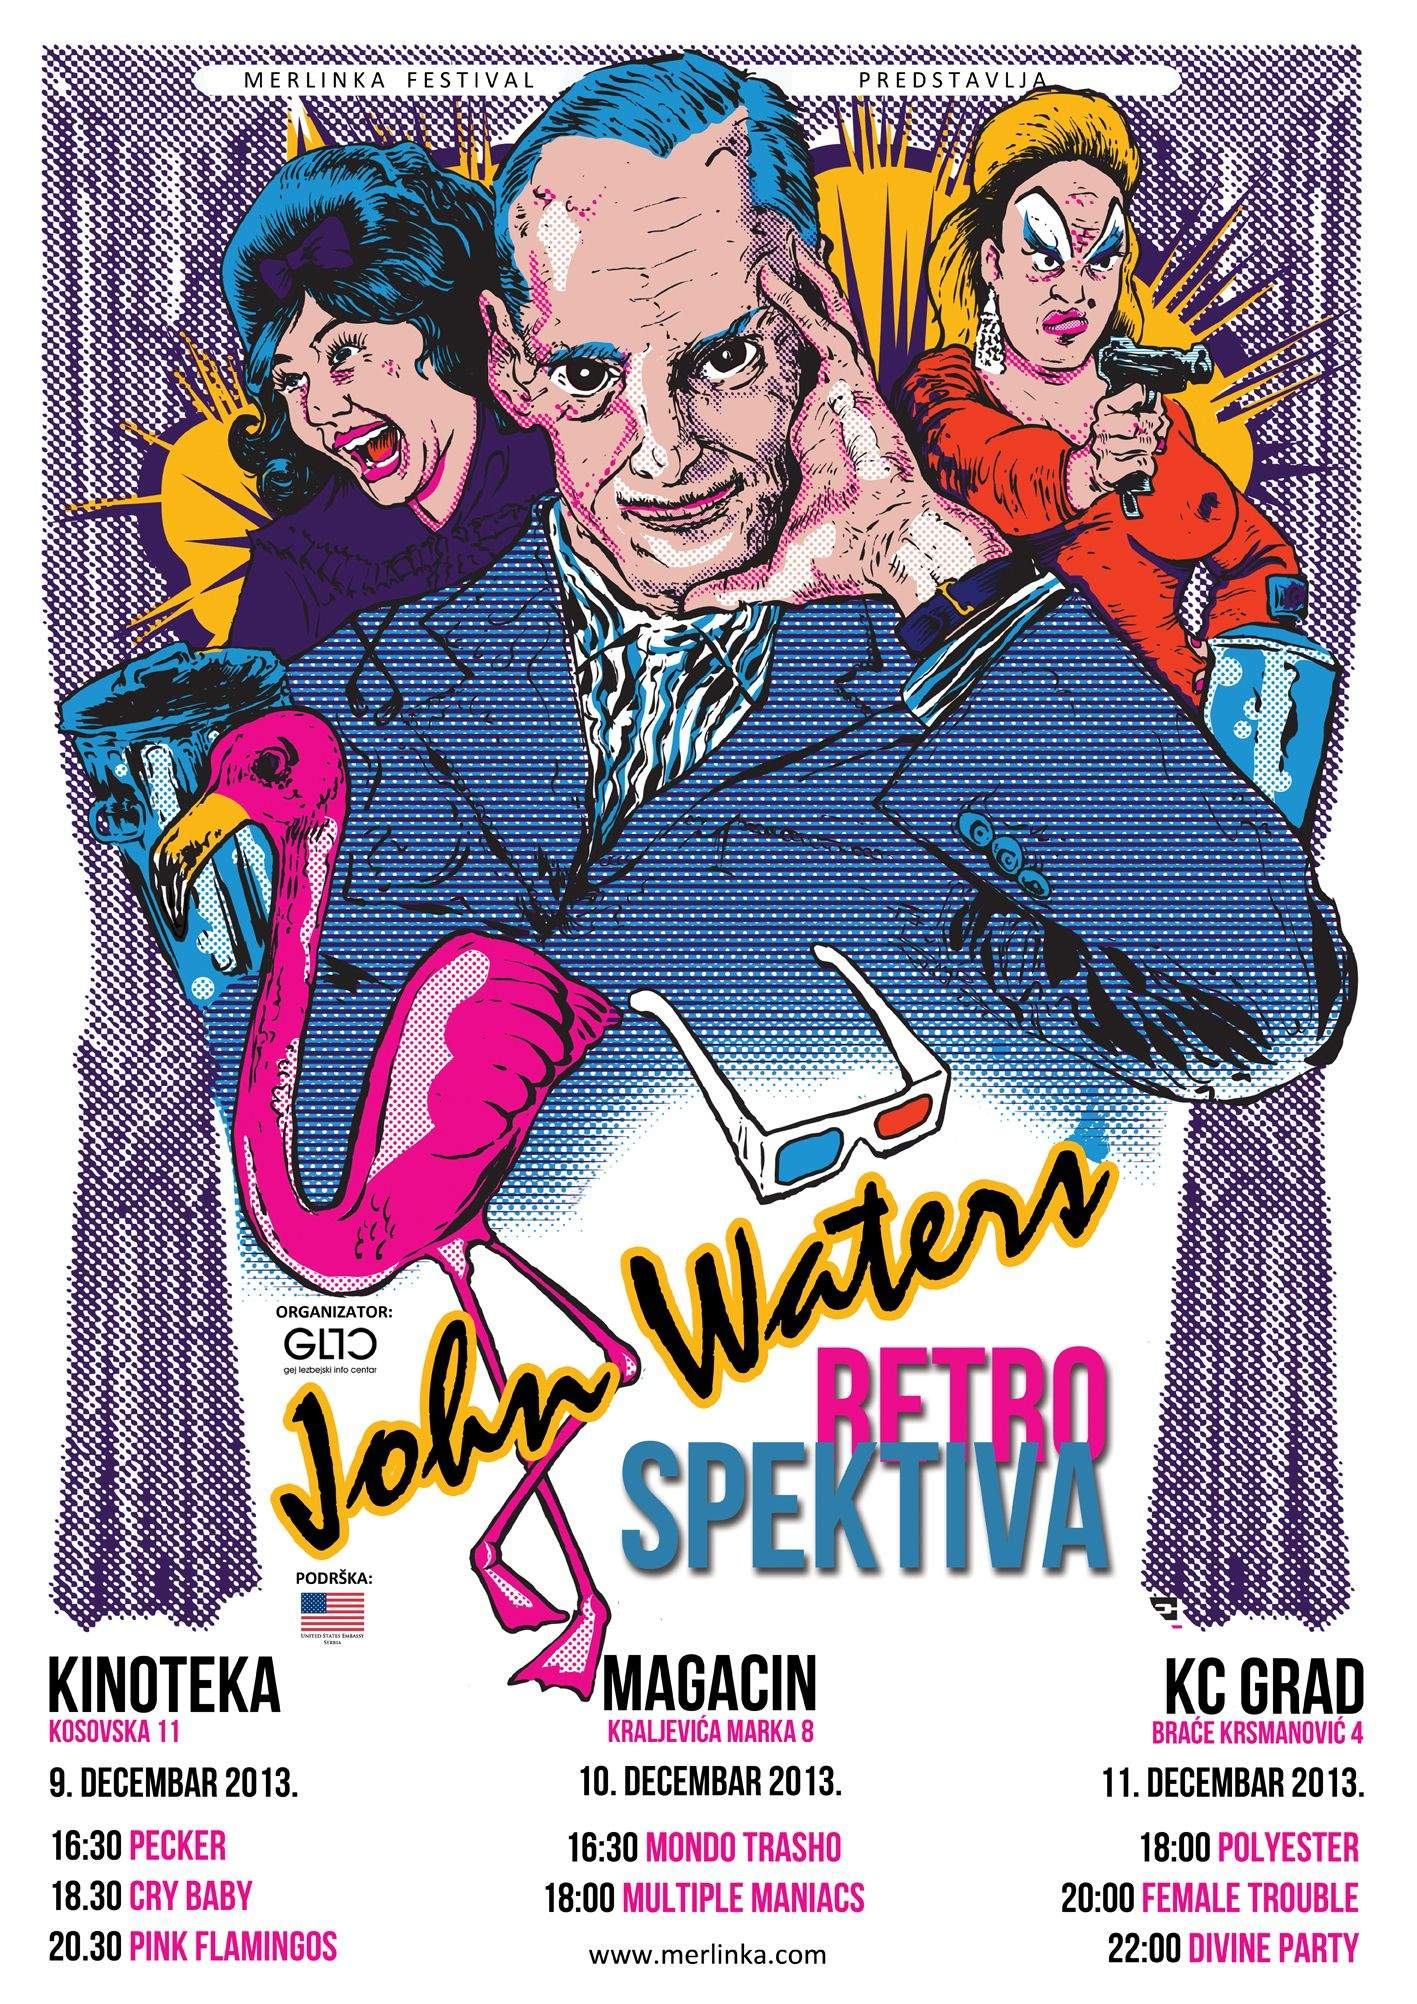 johnwaters-retrospektivaFB.17093.jpg